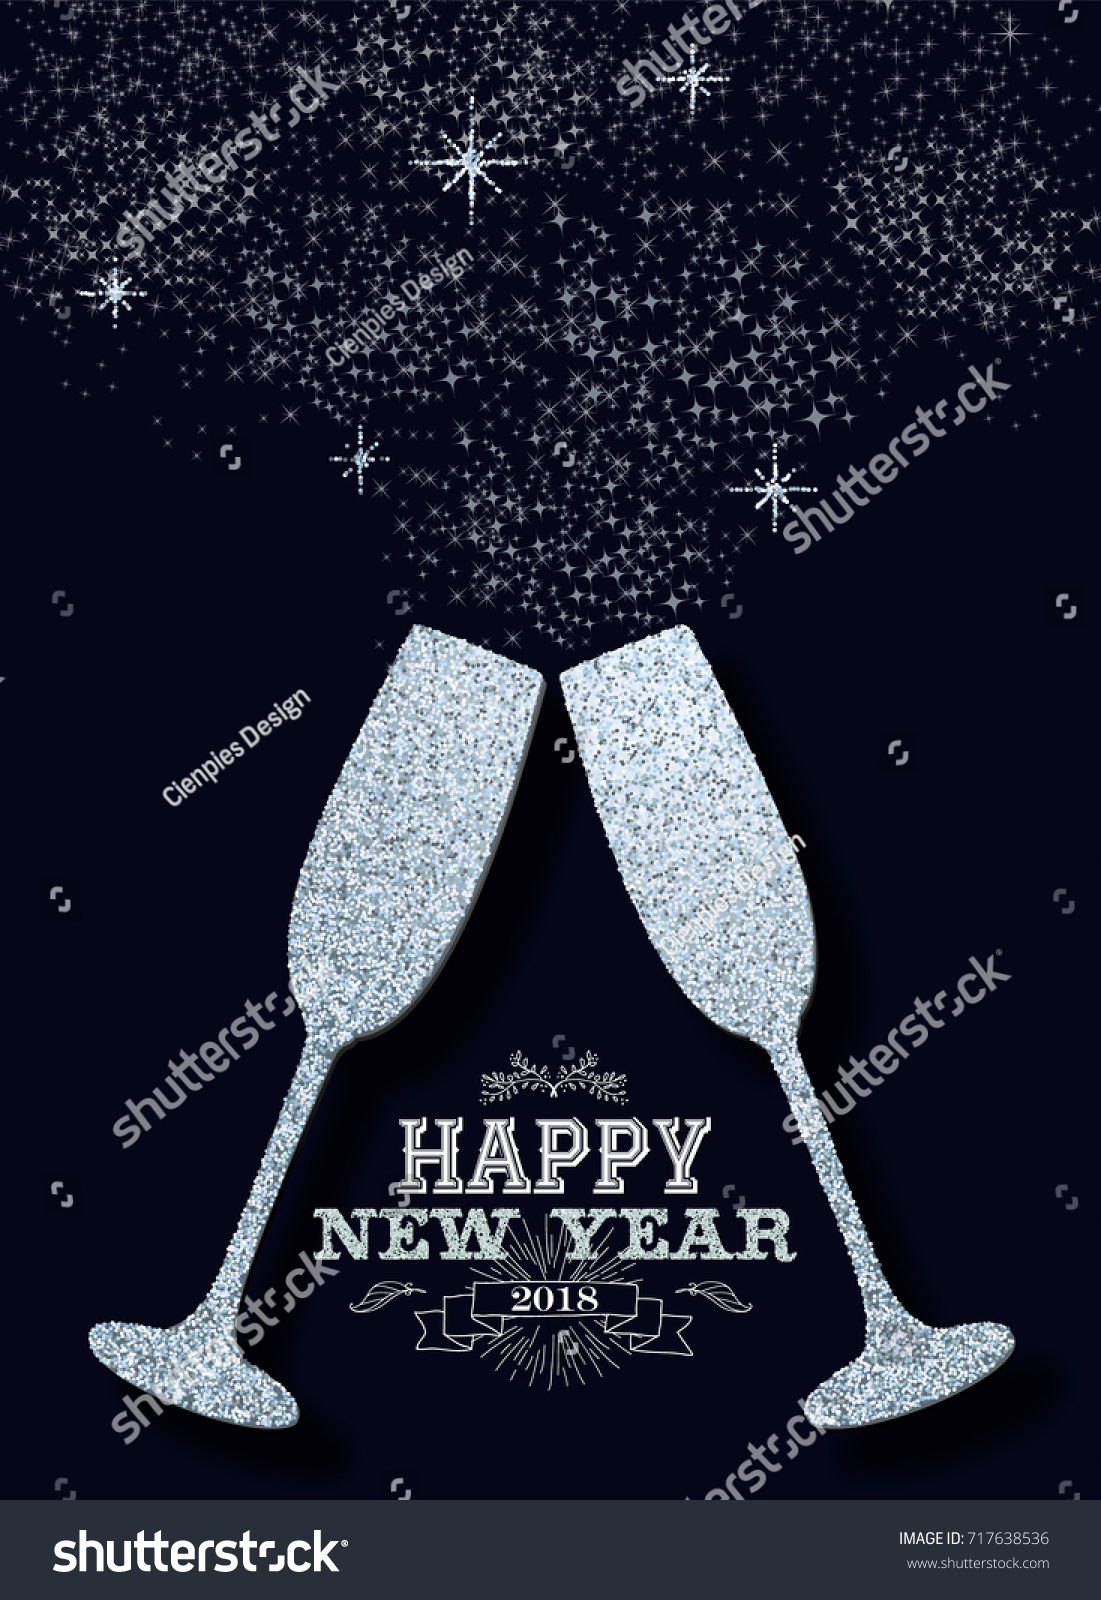 happy new year 2018 luxury celebration toast made of silver glitter sparkle dust ideal for